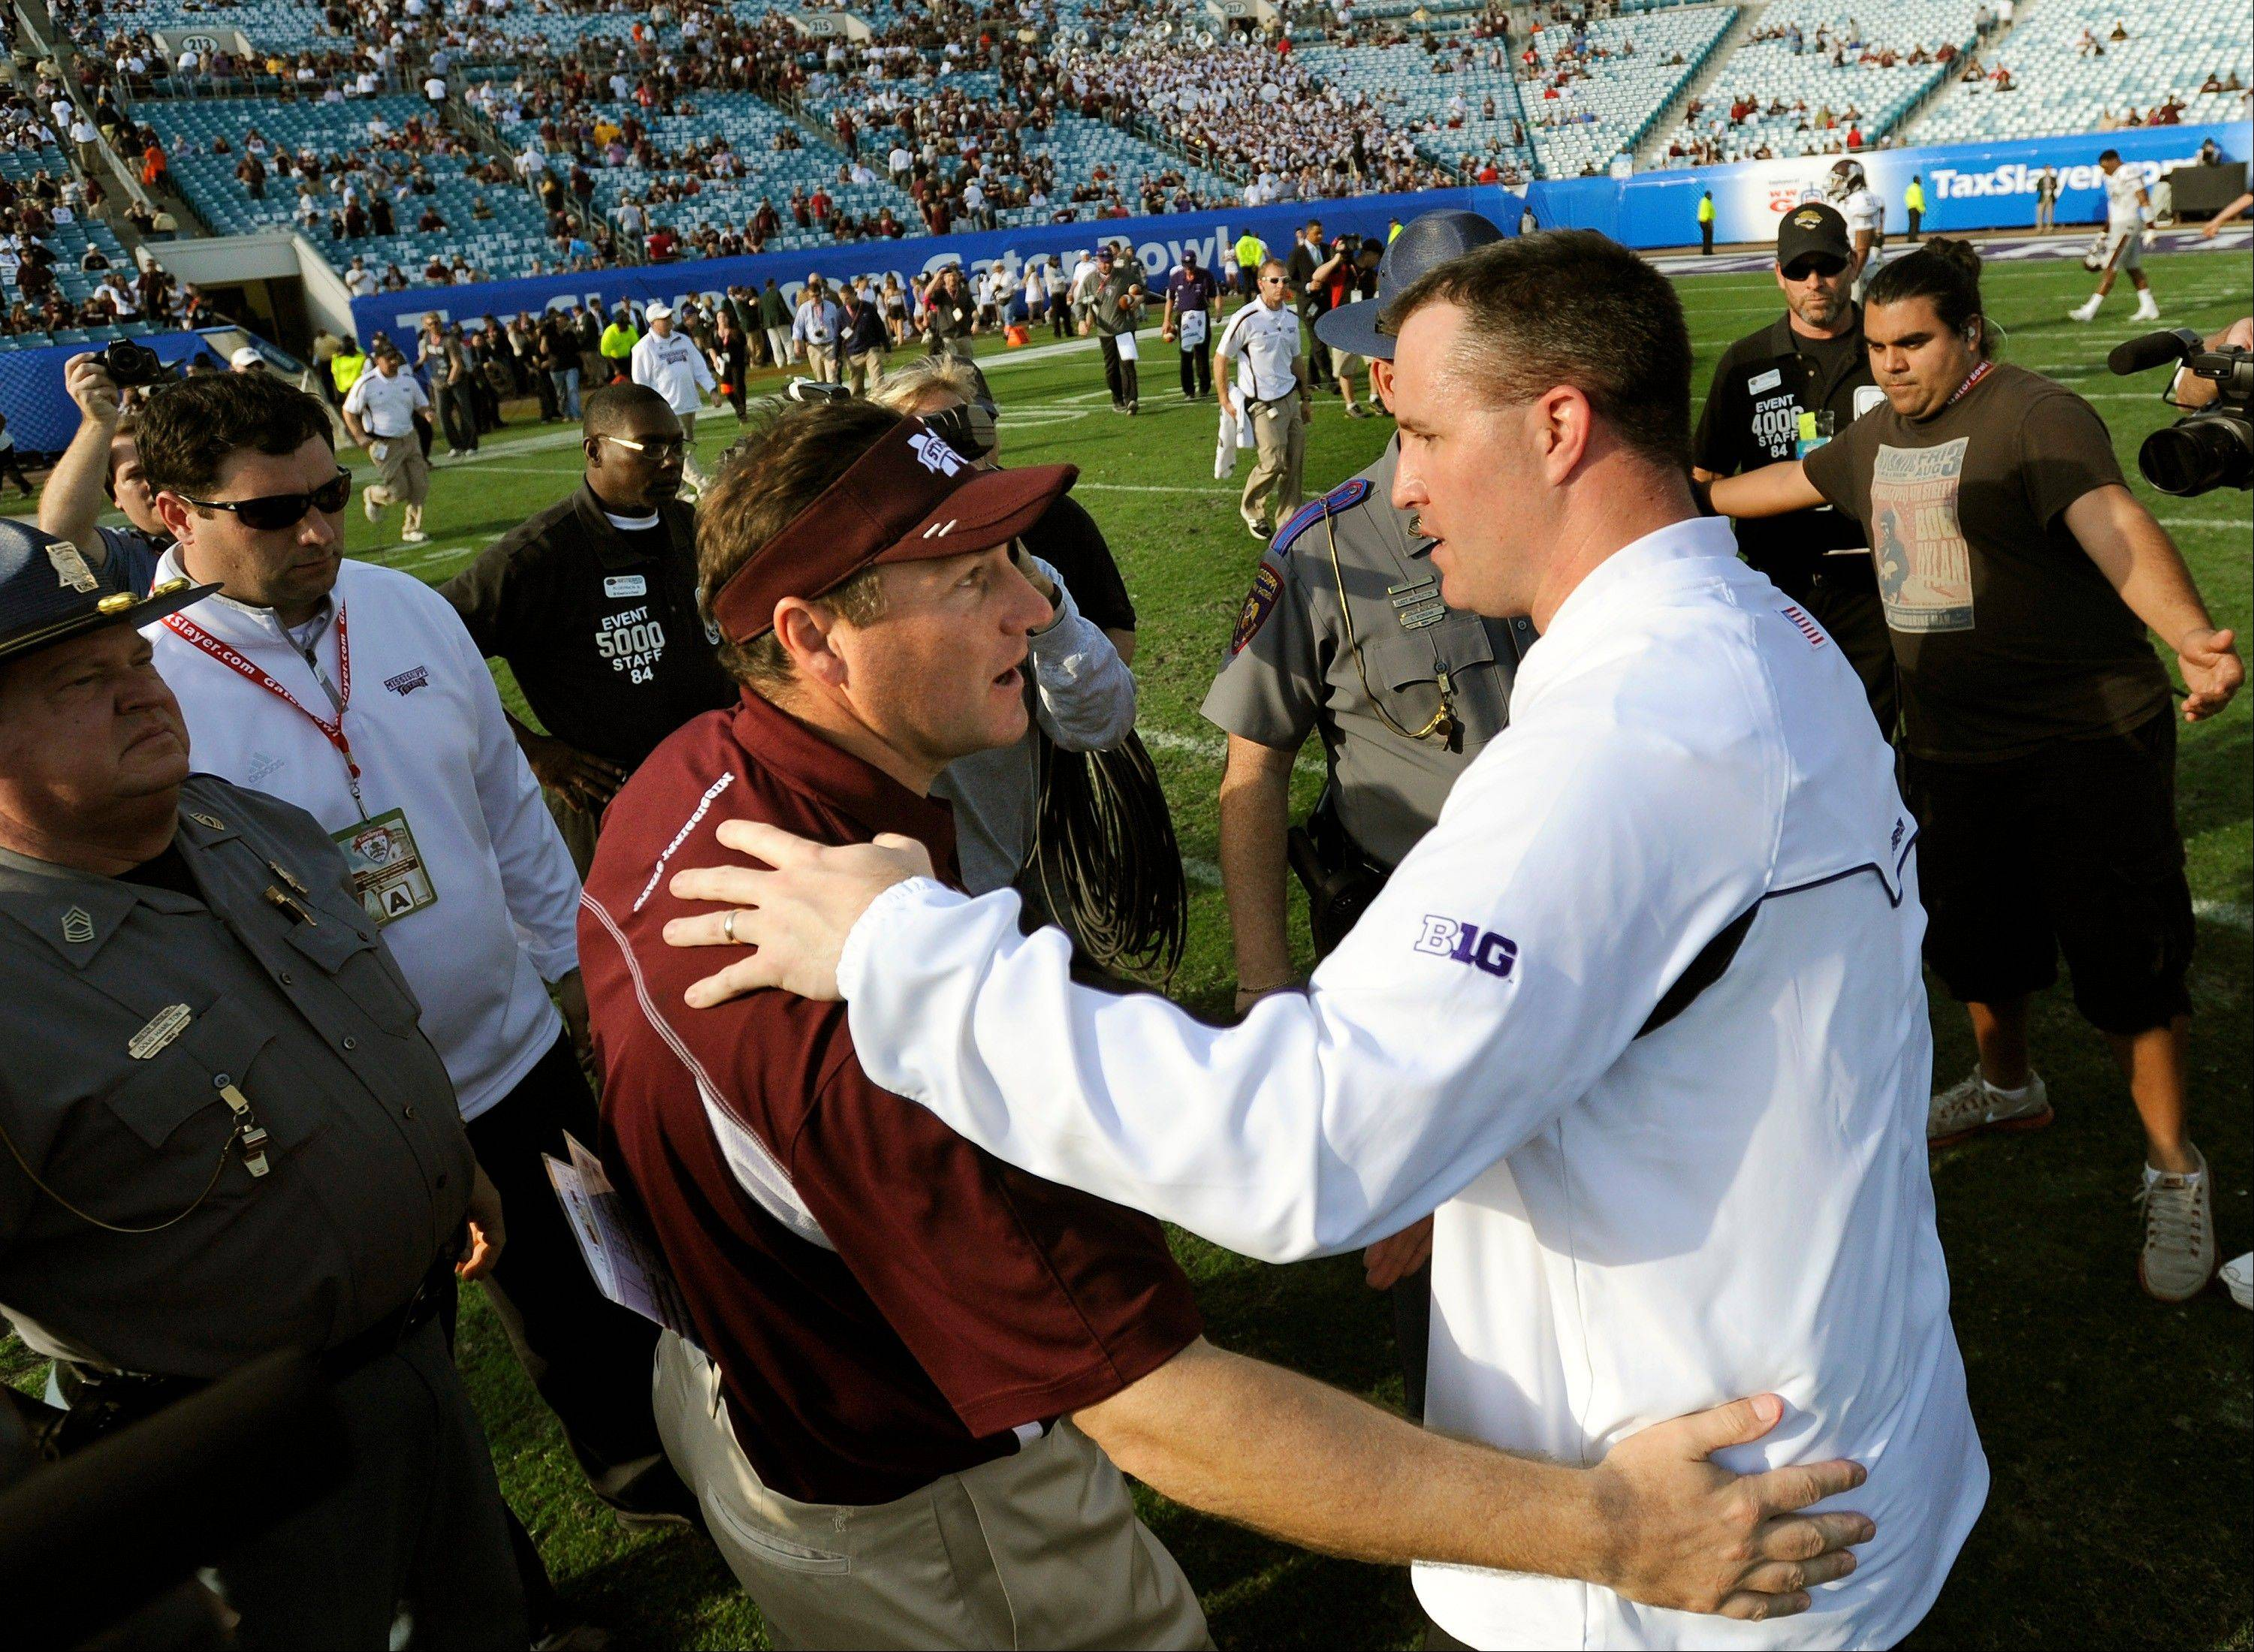 Northwestern head coach Pat Fitzgerald, right, and Mississippi State head coach Dan Mullen, left, greet each other after the Gator Bowl NCAA college football game, Tuesday, Jan. 1, 2013 in Jacksonville, Fla. Northwestern won 34-20.